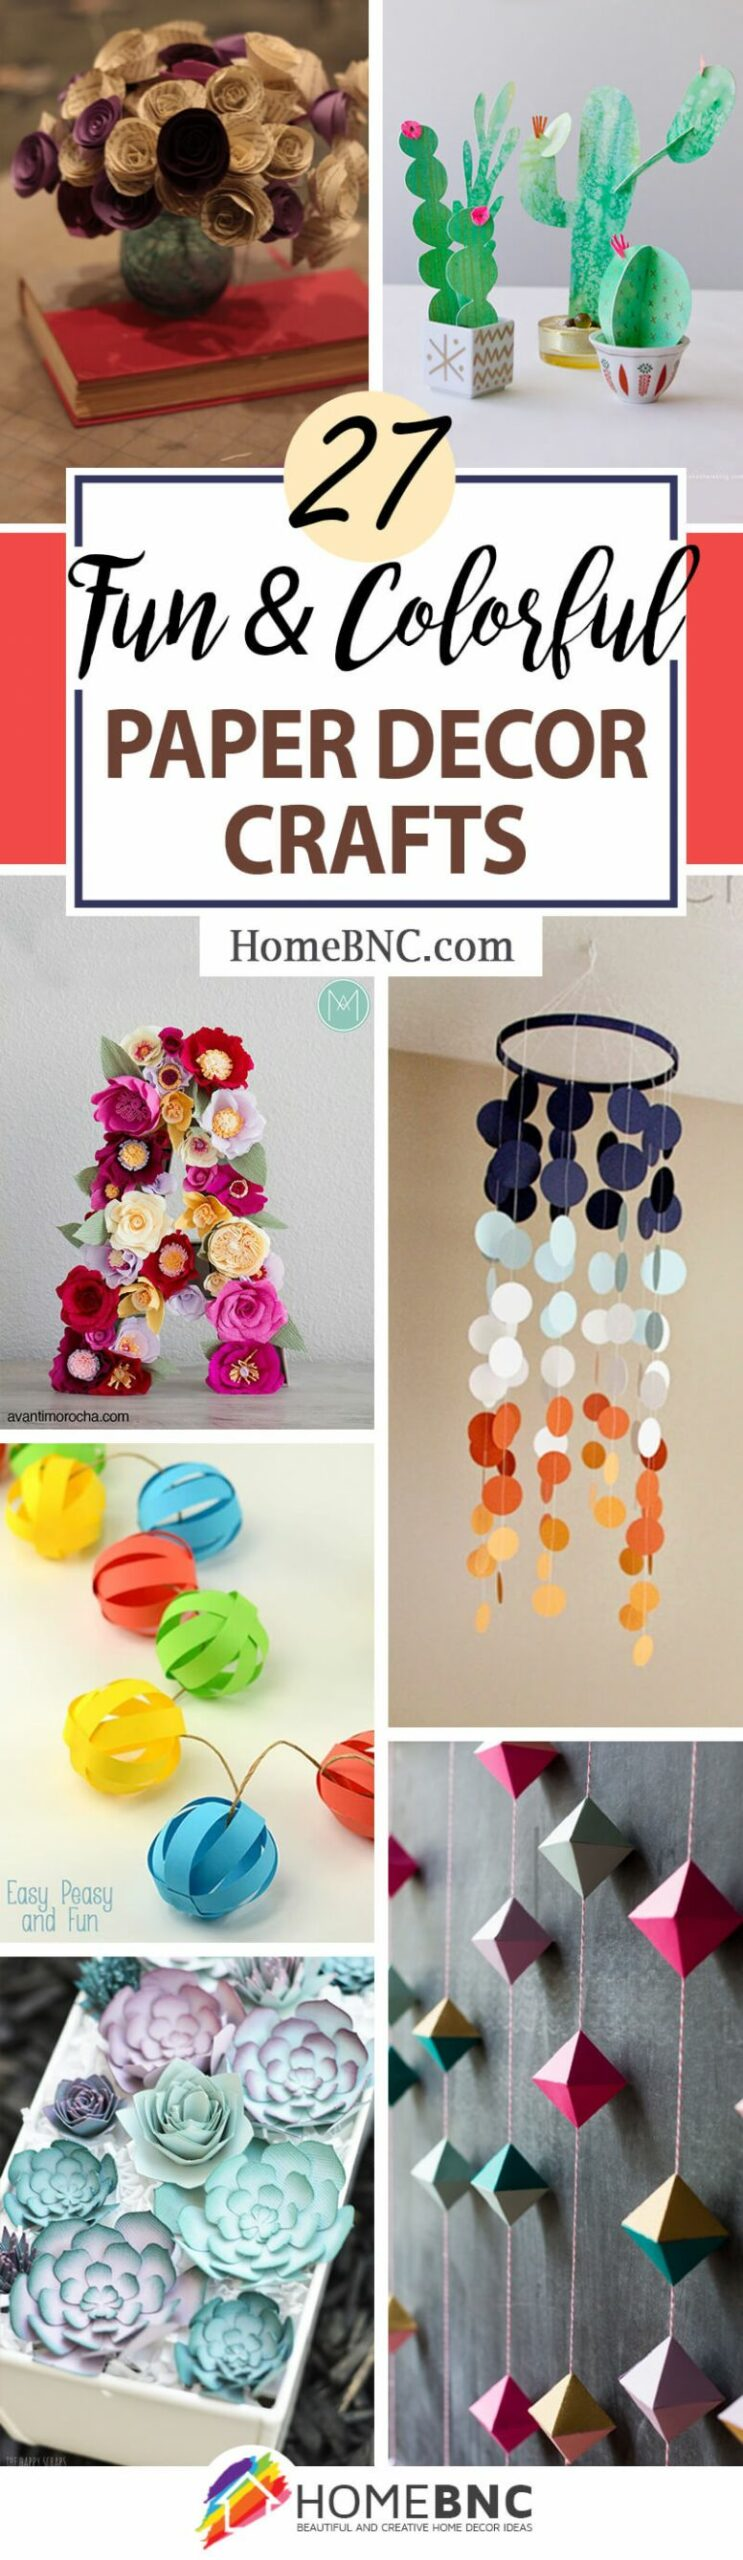 10 Best Paper Decor Crafts (Ideas and Designs) for 10 - home decor crafts